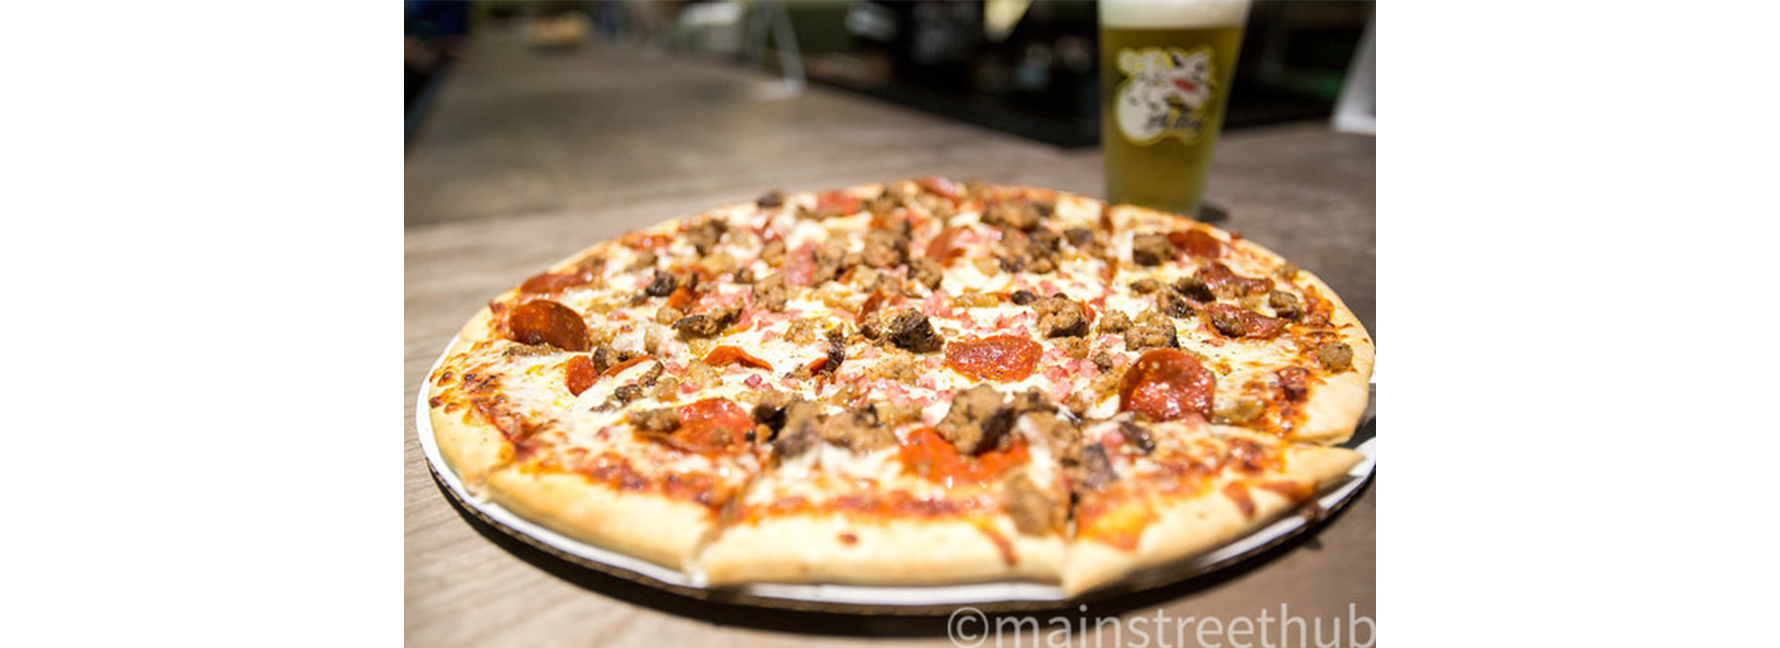 A Pizza from the Back Alley Sport's Pub